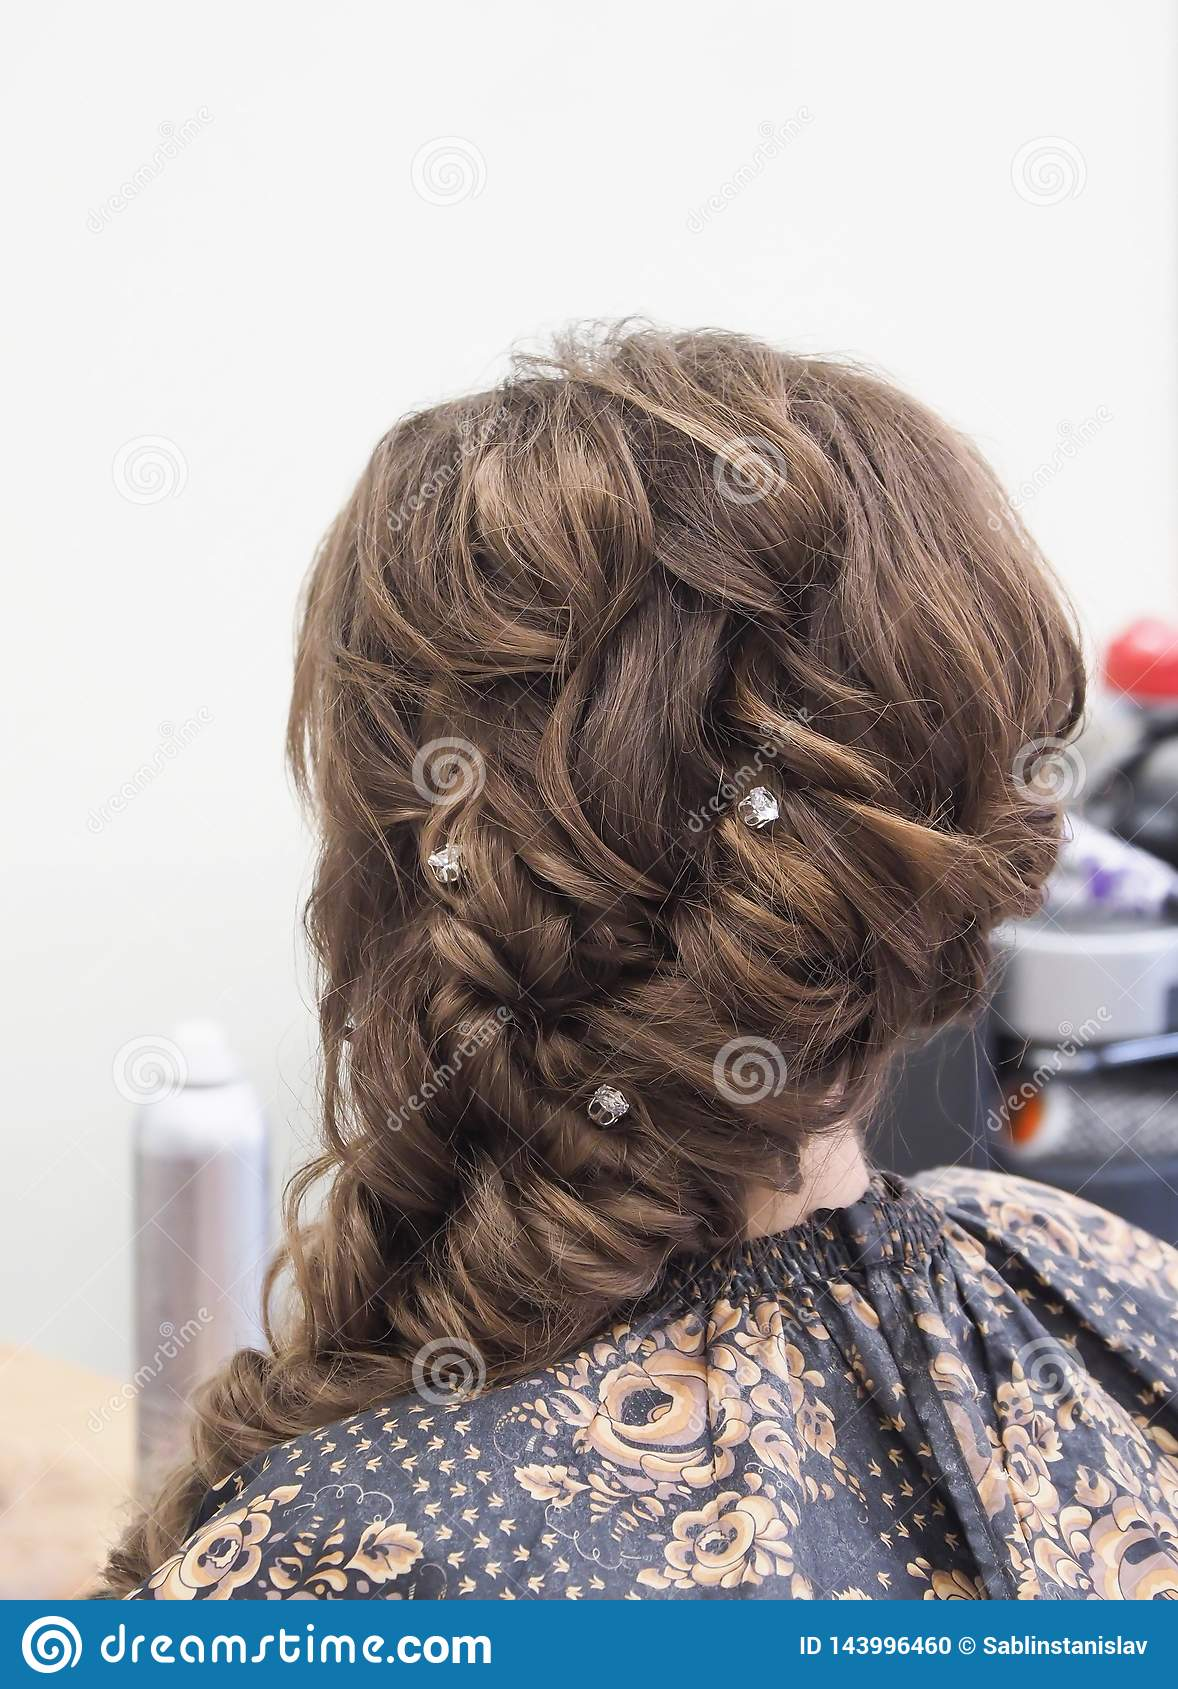 French braid with jewelry. Hairstyle with jewelry.